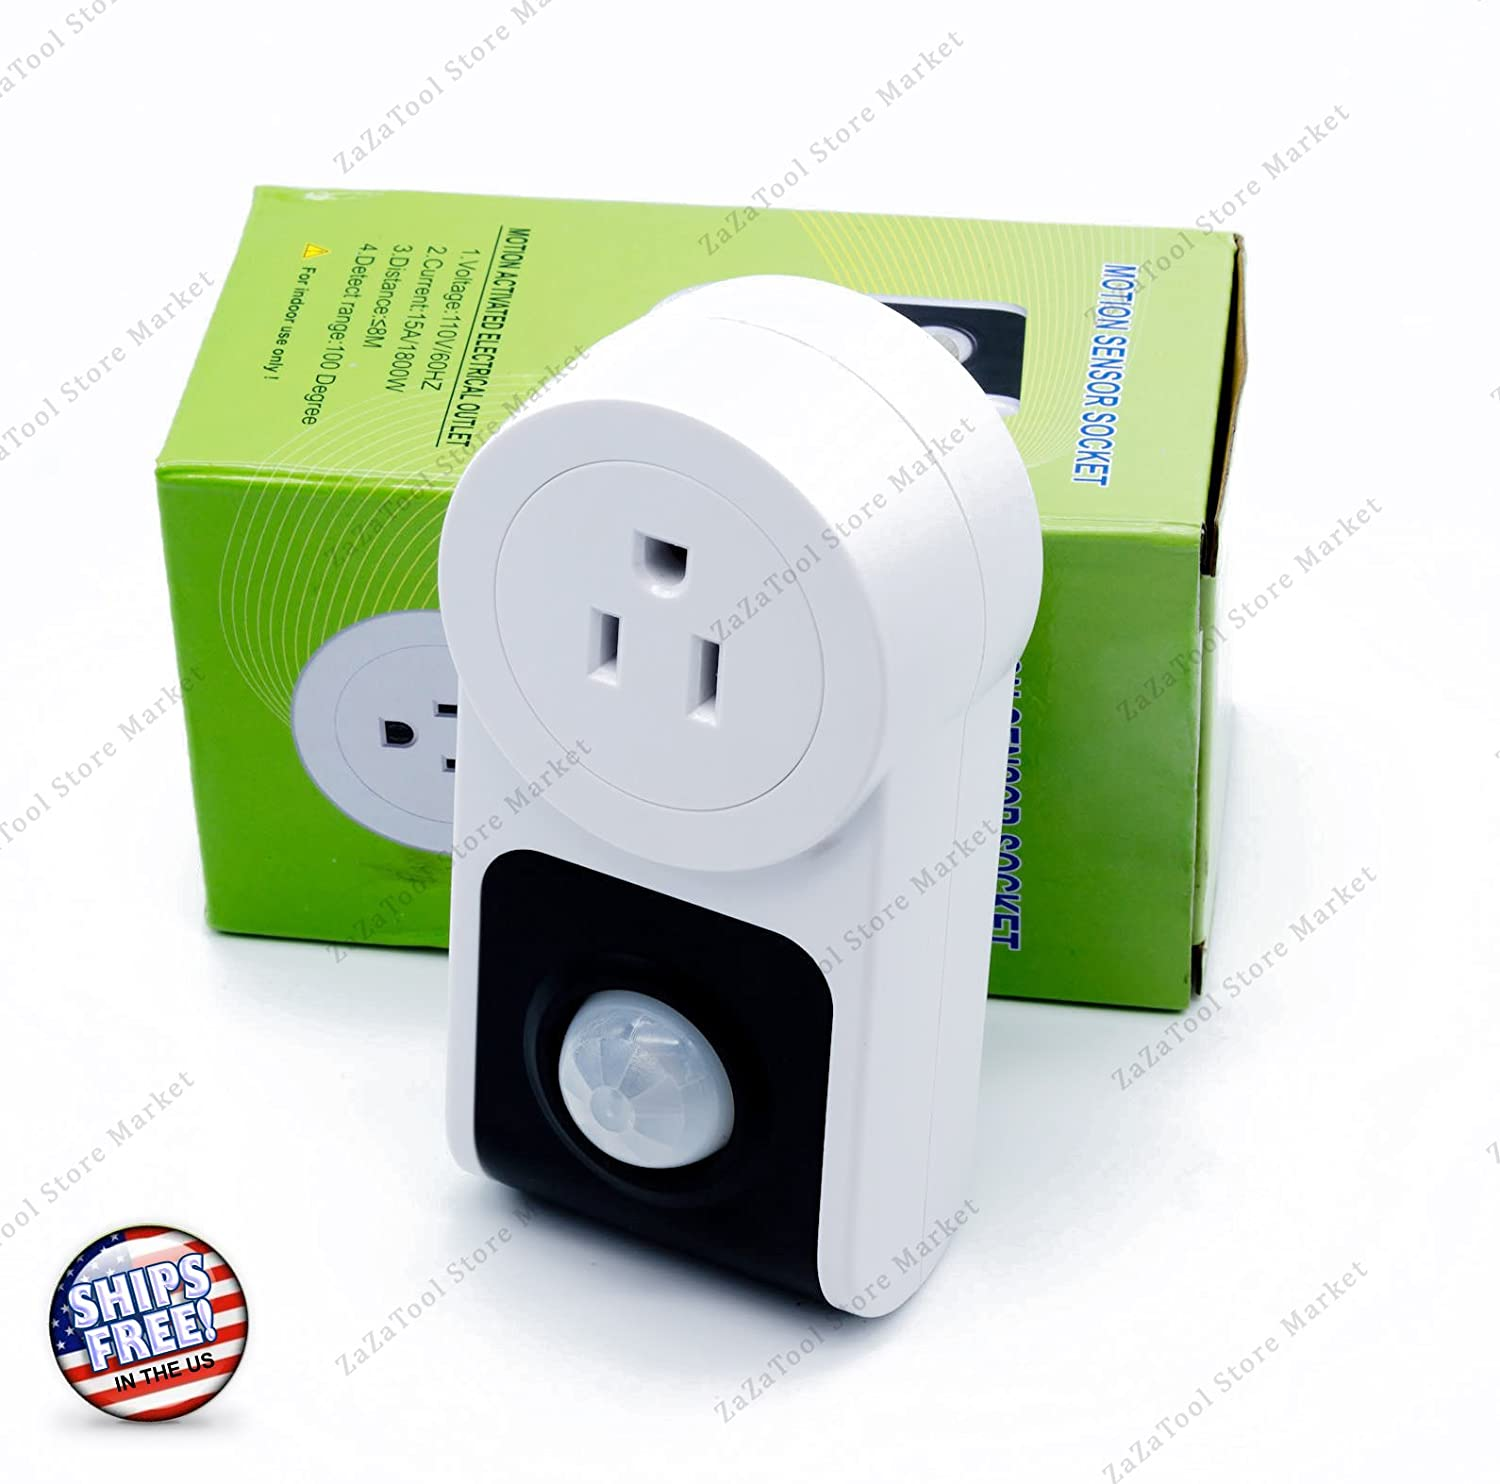 NEW Motion Sensor Activated Power Socket Electrical Outlet ...